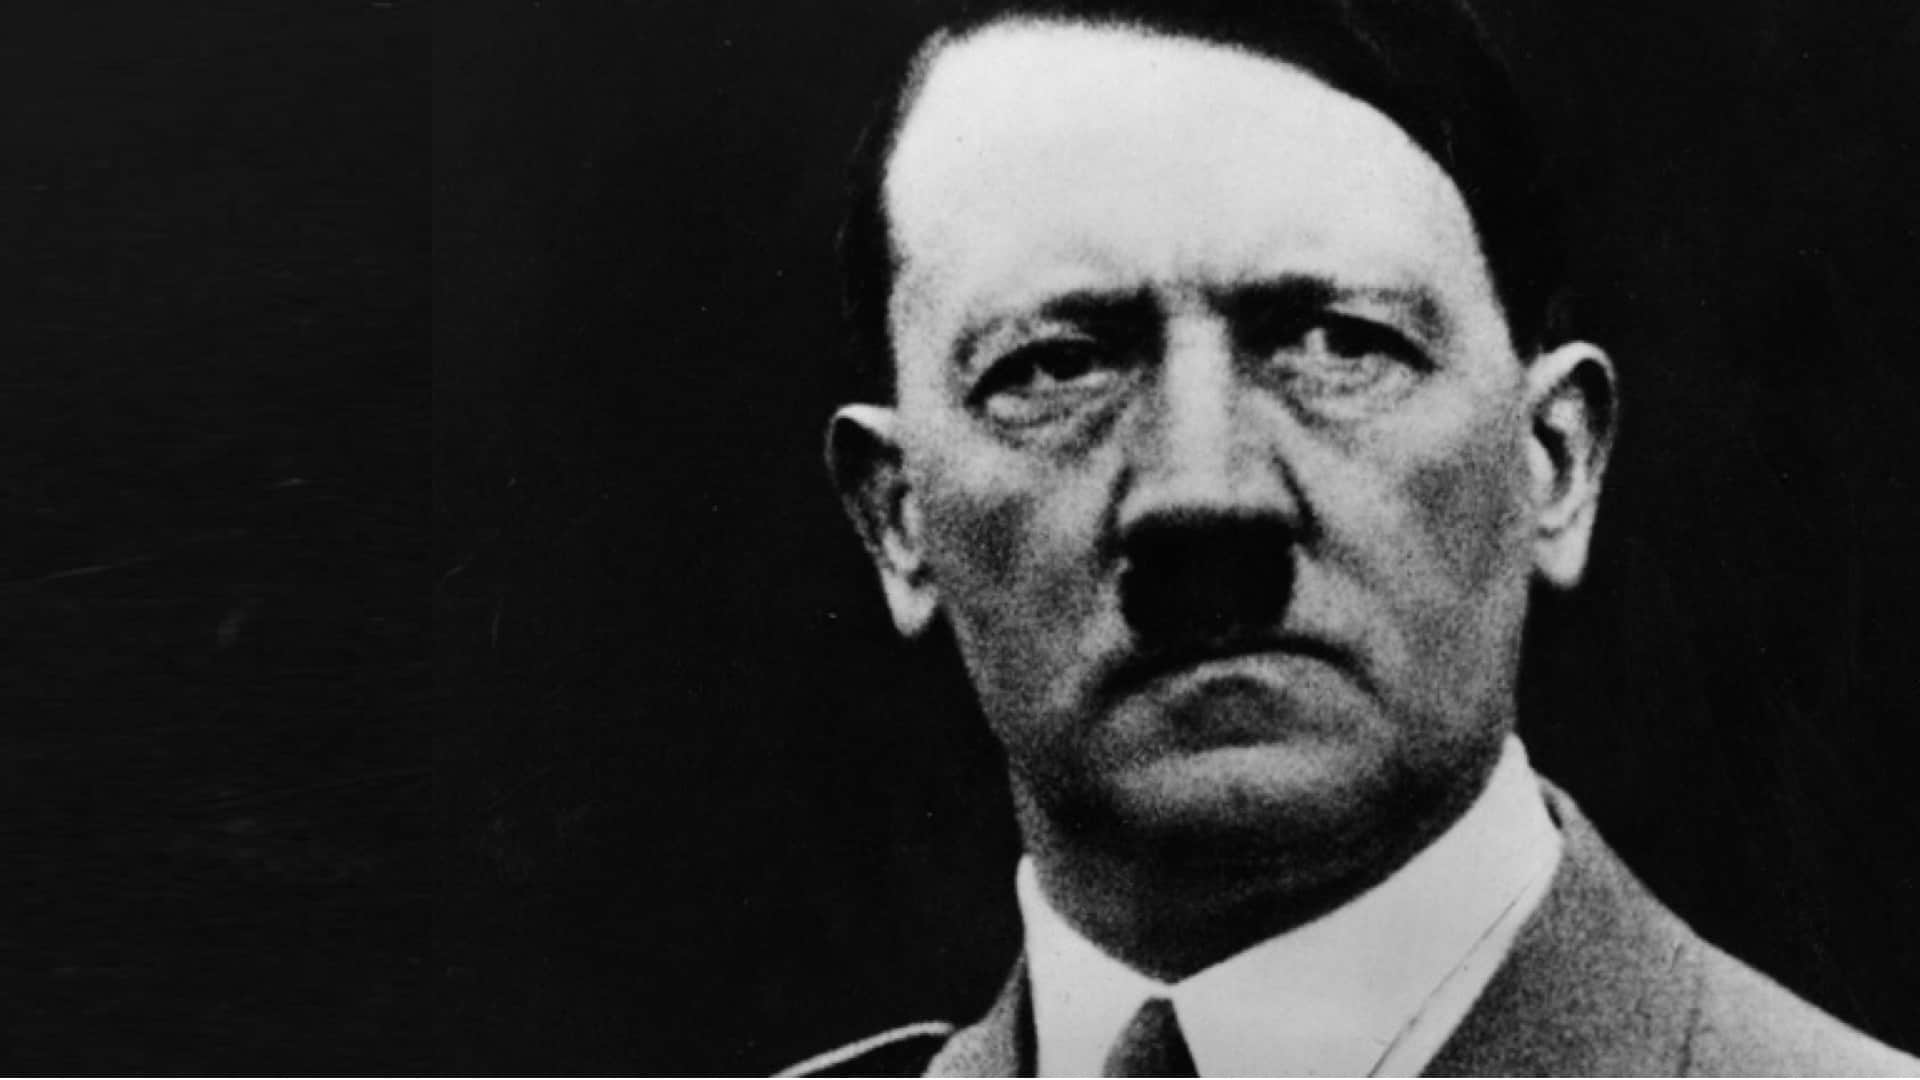 The image shows a close-up of Adolf Hitler.